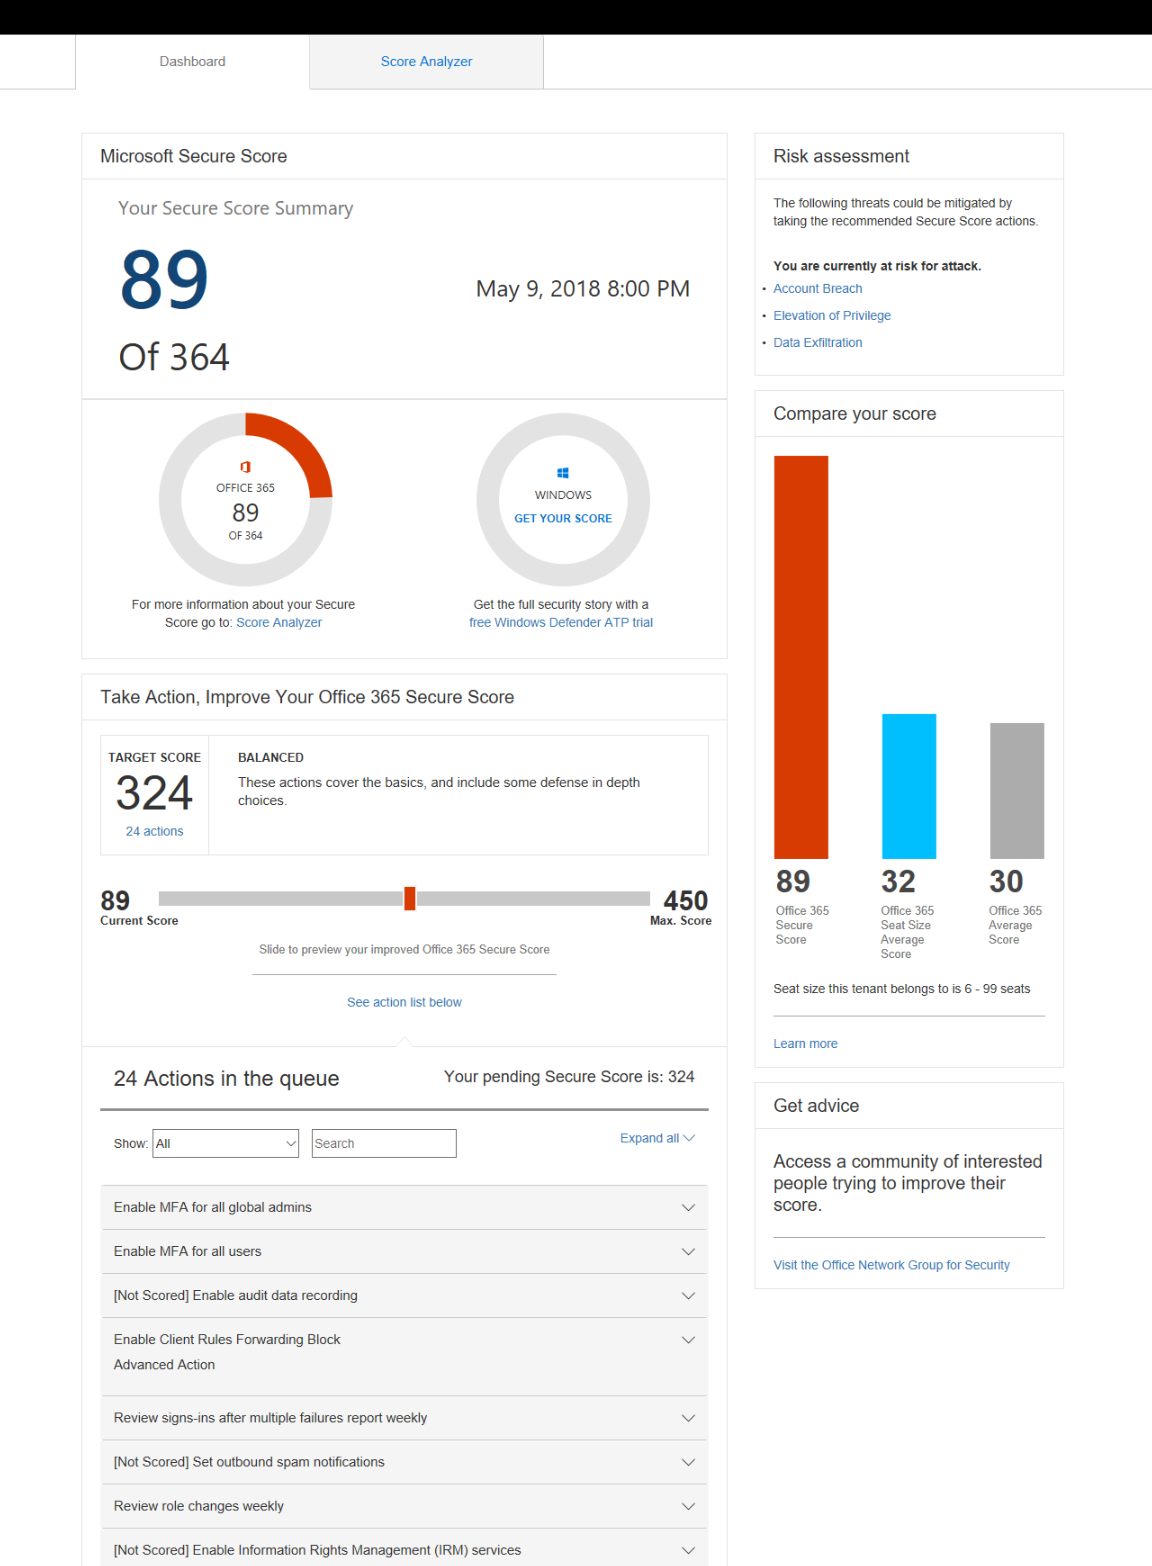 Office 365 Secure Score